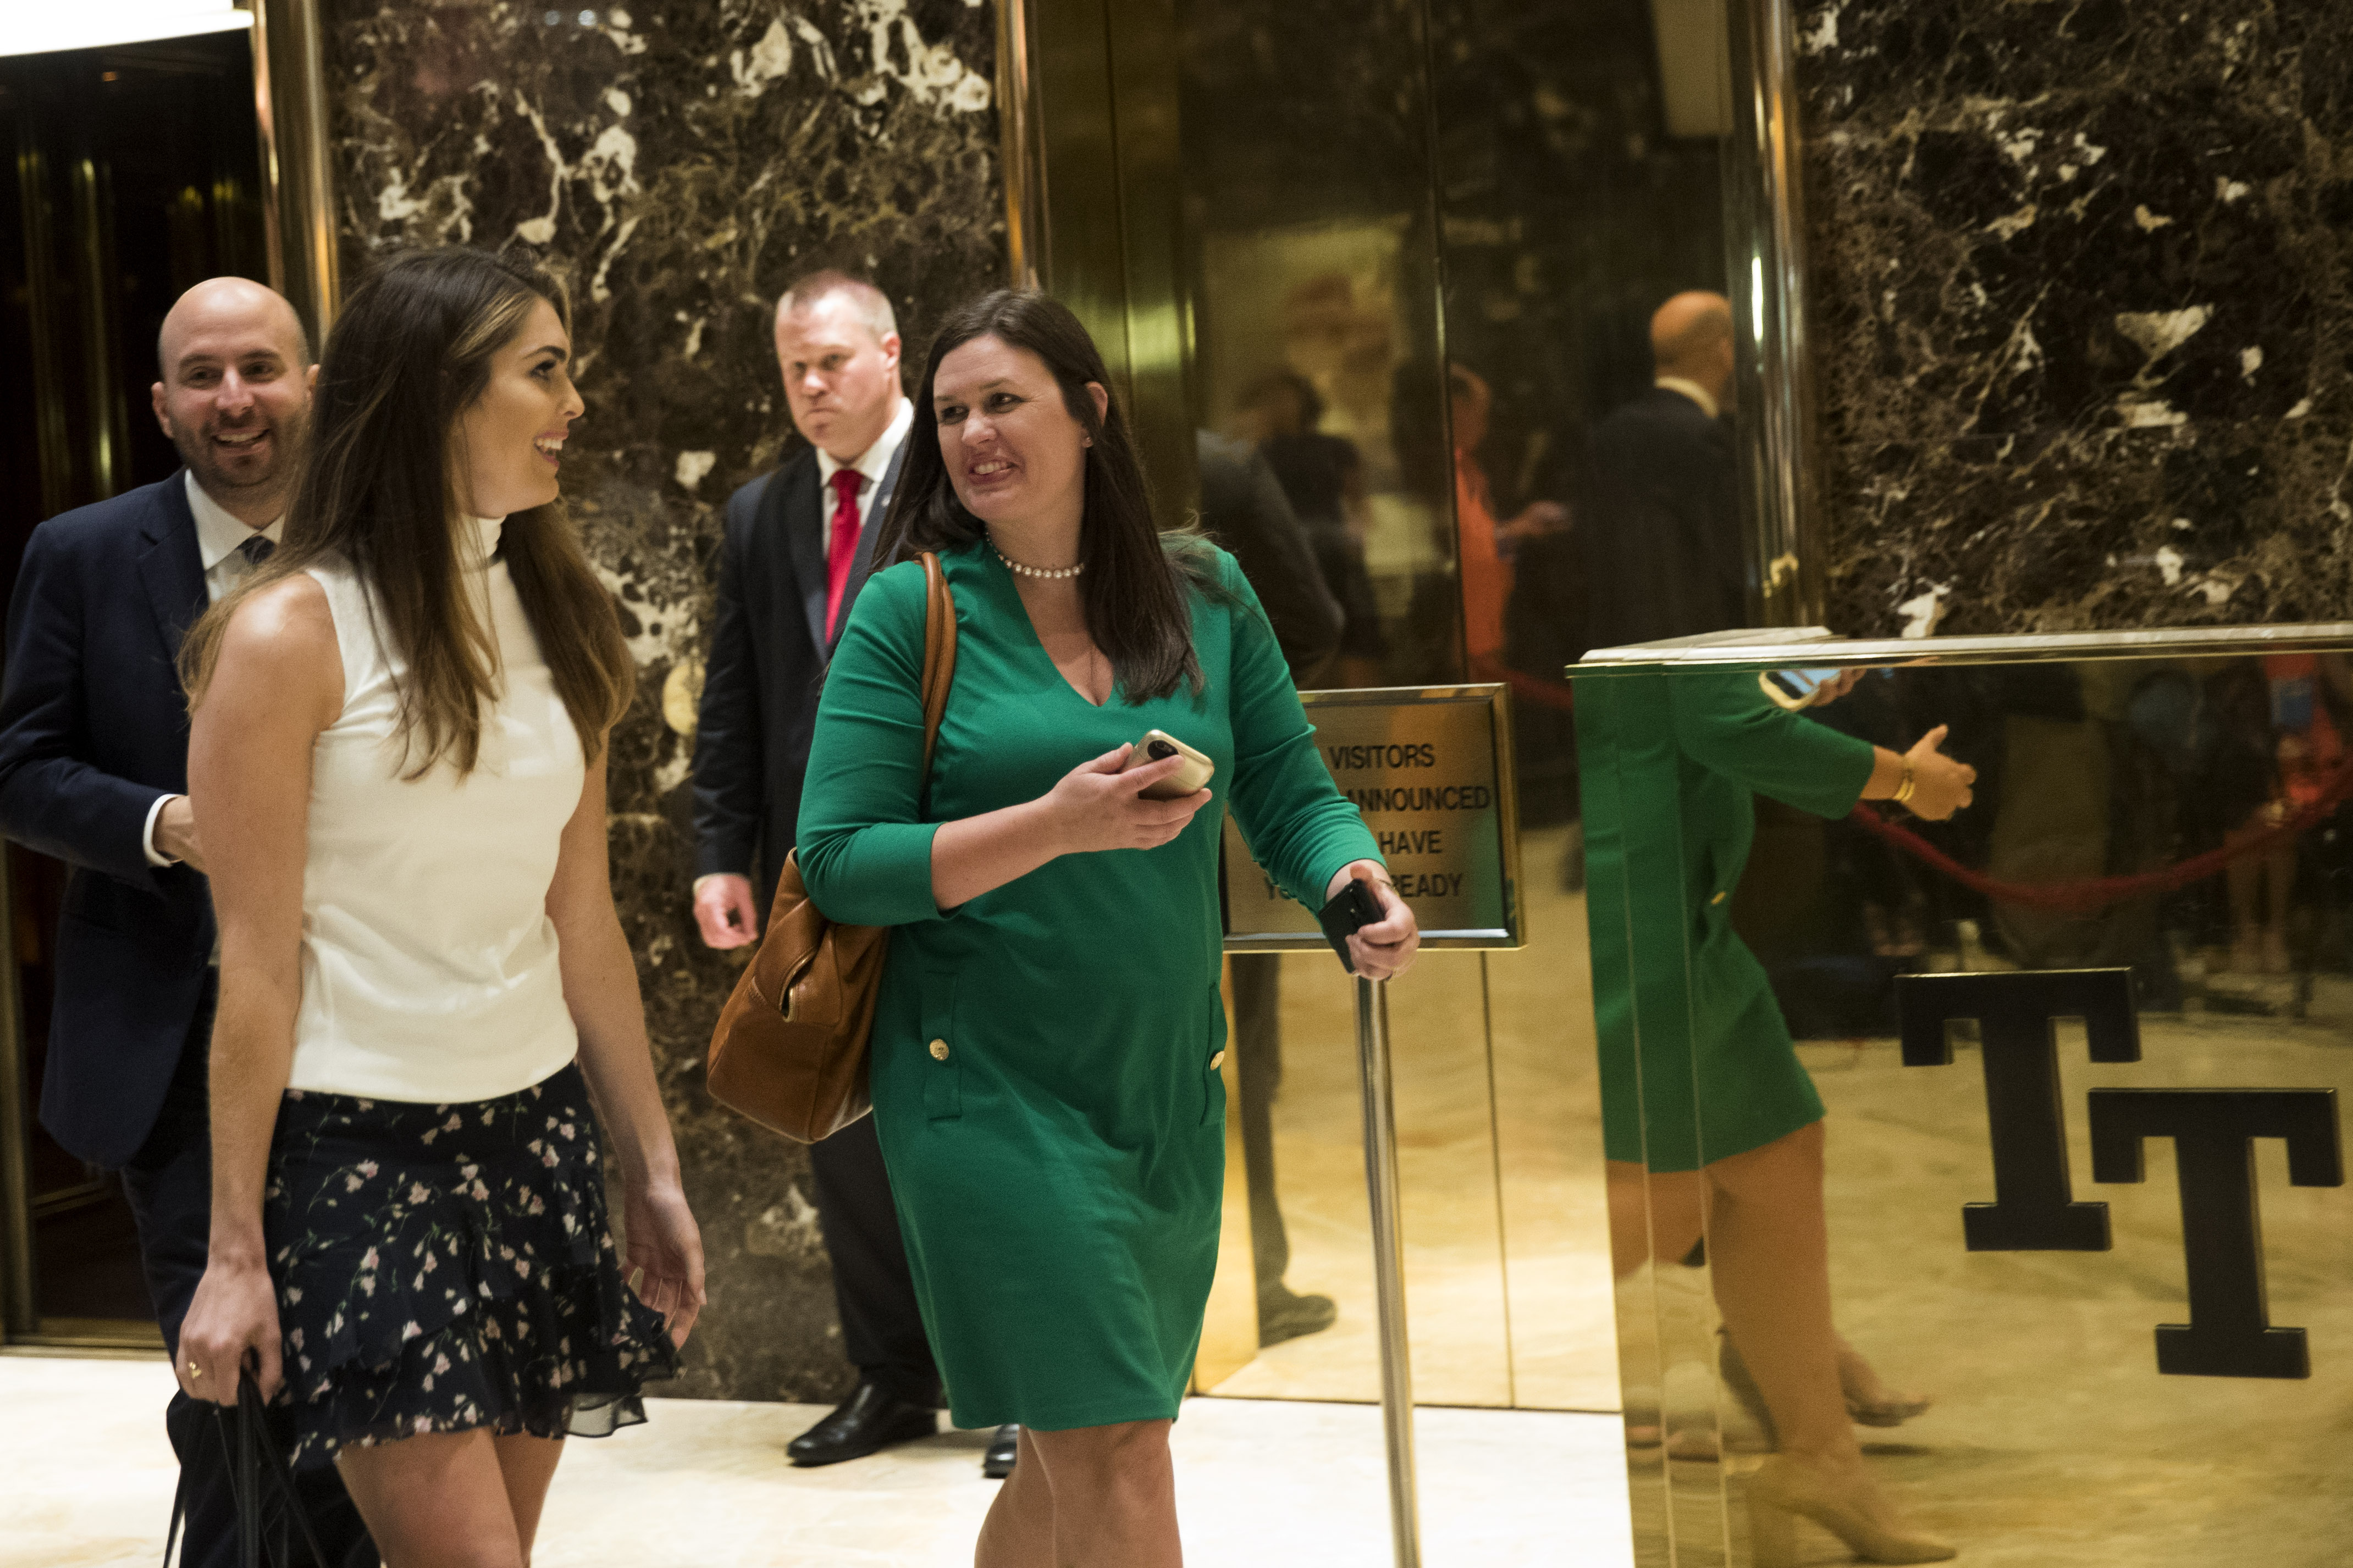 White House names Hope Hicks as communications director